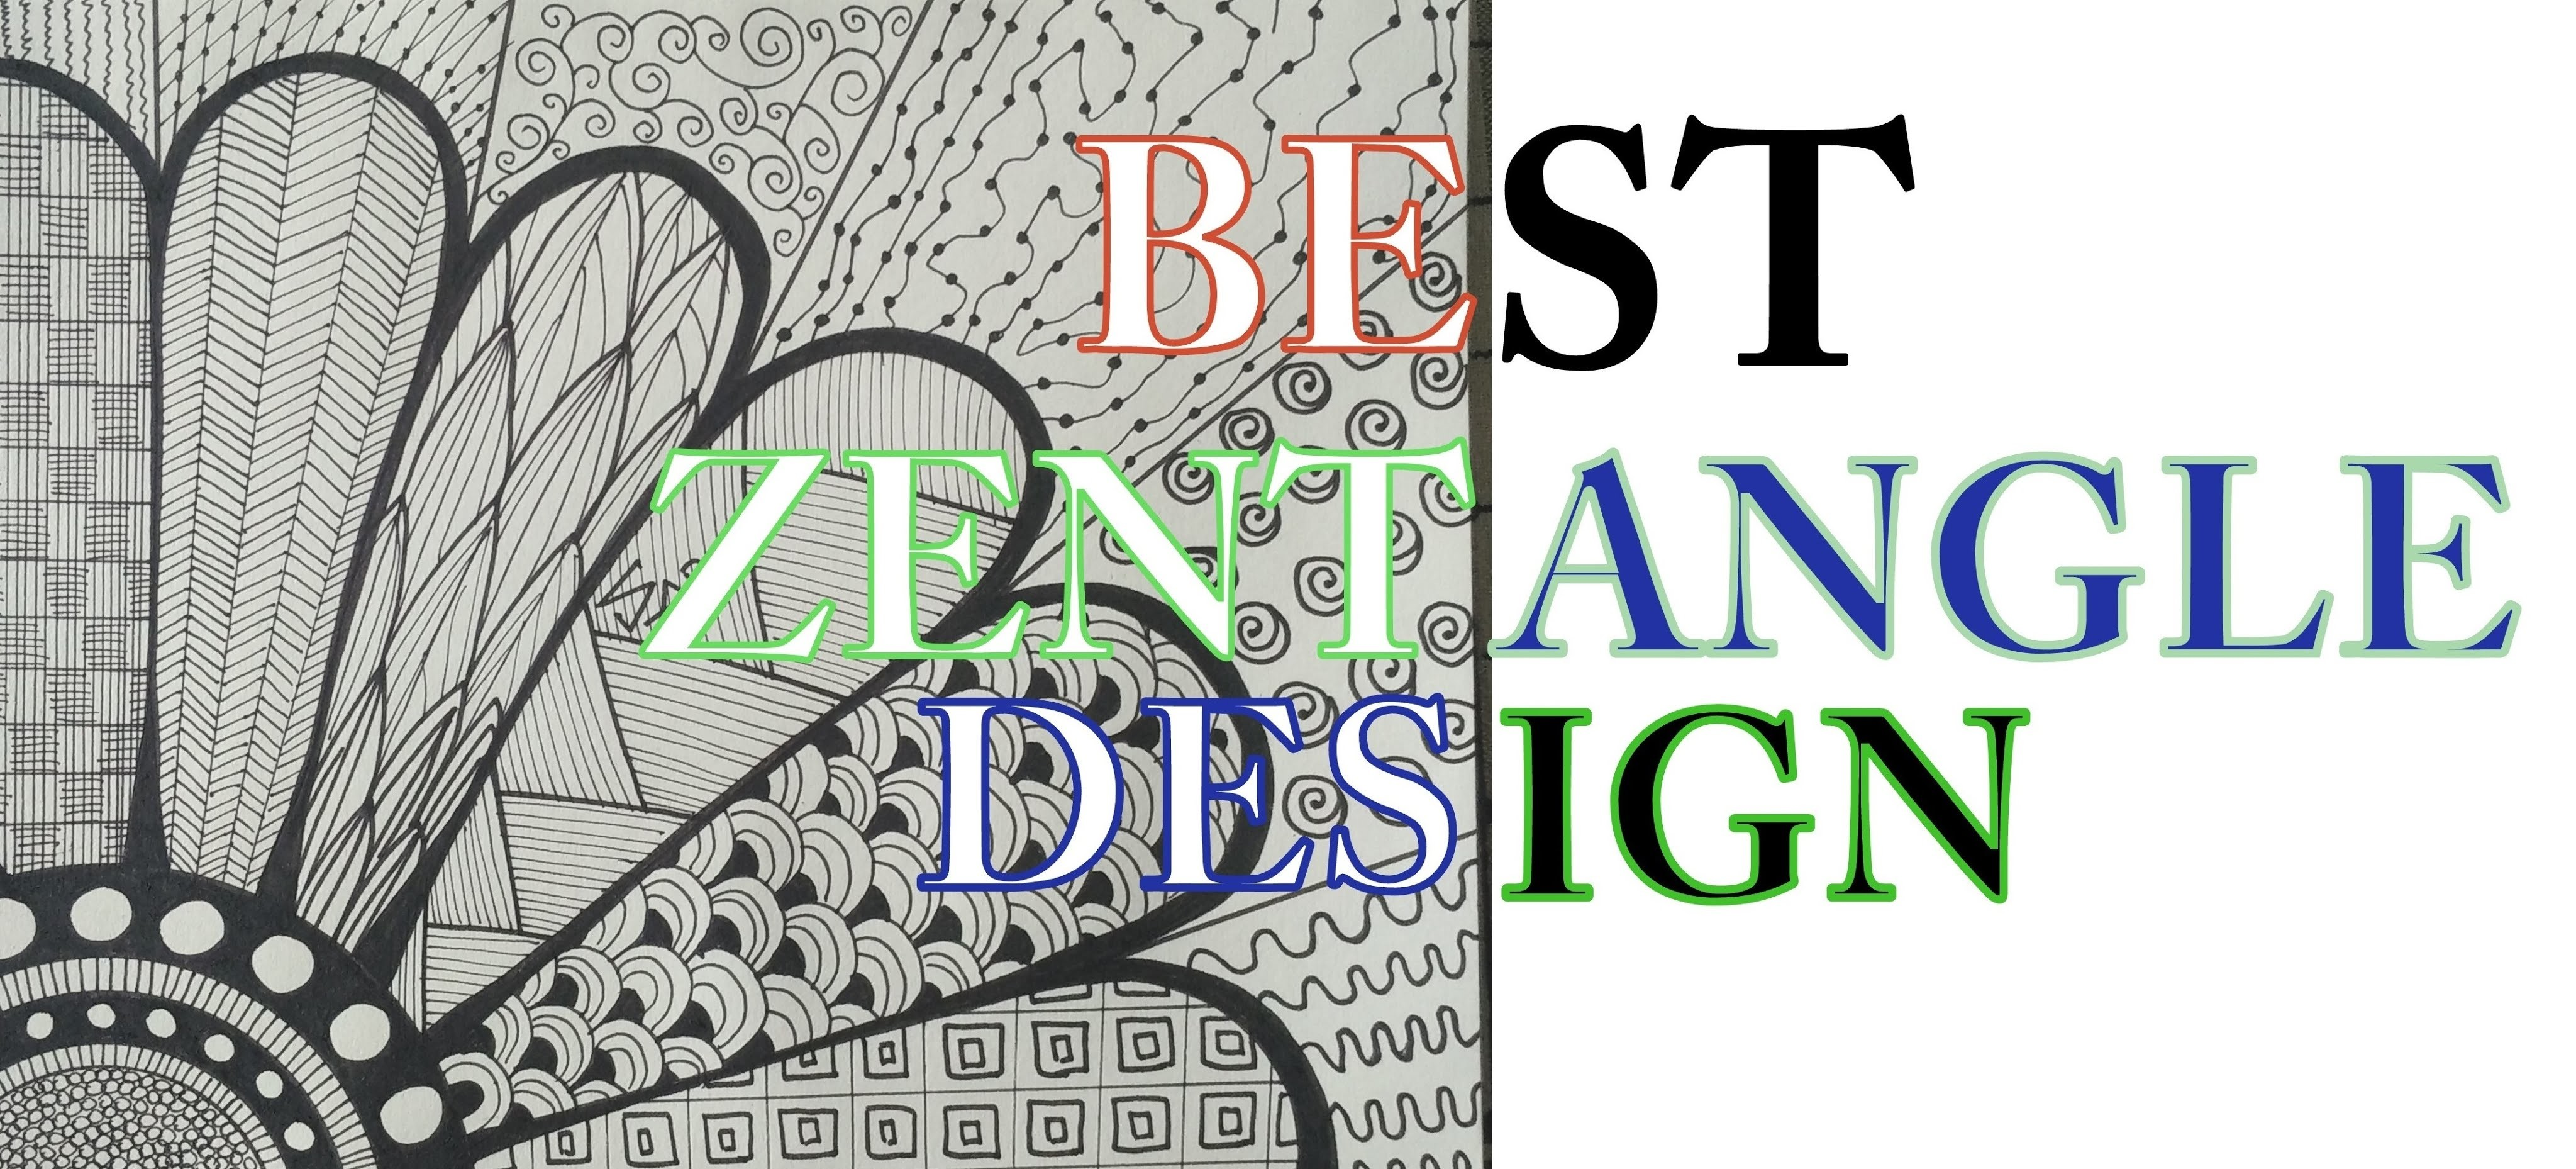 How To Draw Complex Zentangle Art Design For Beginners Easy